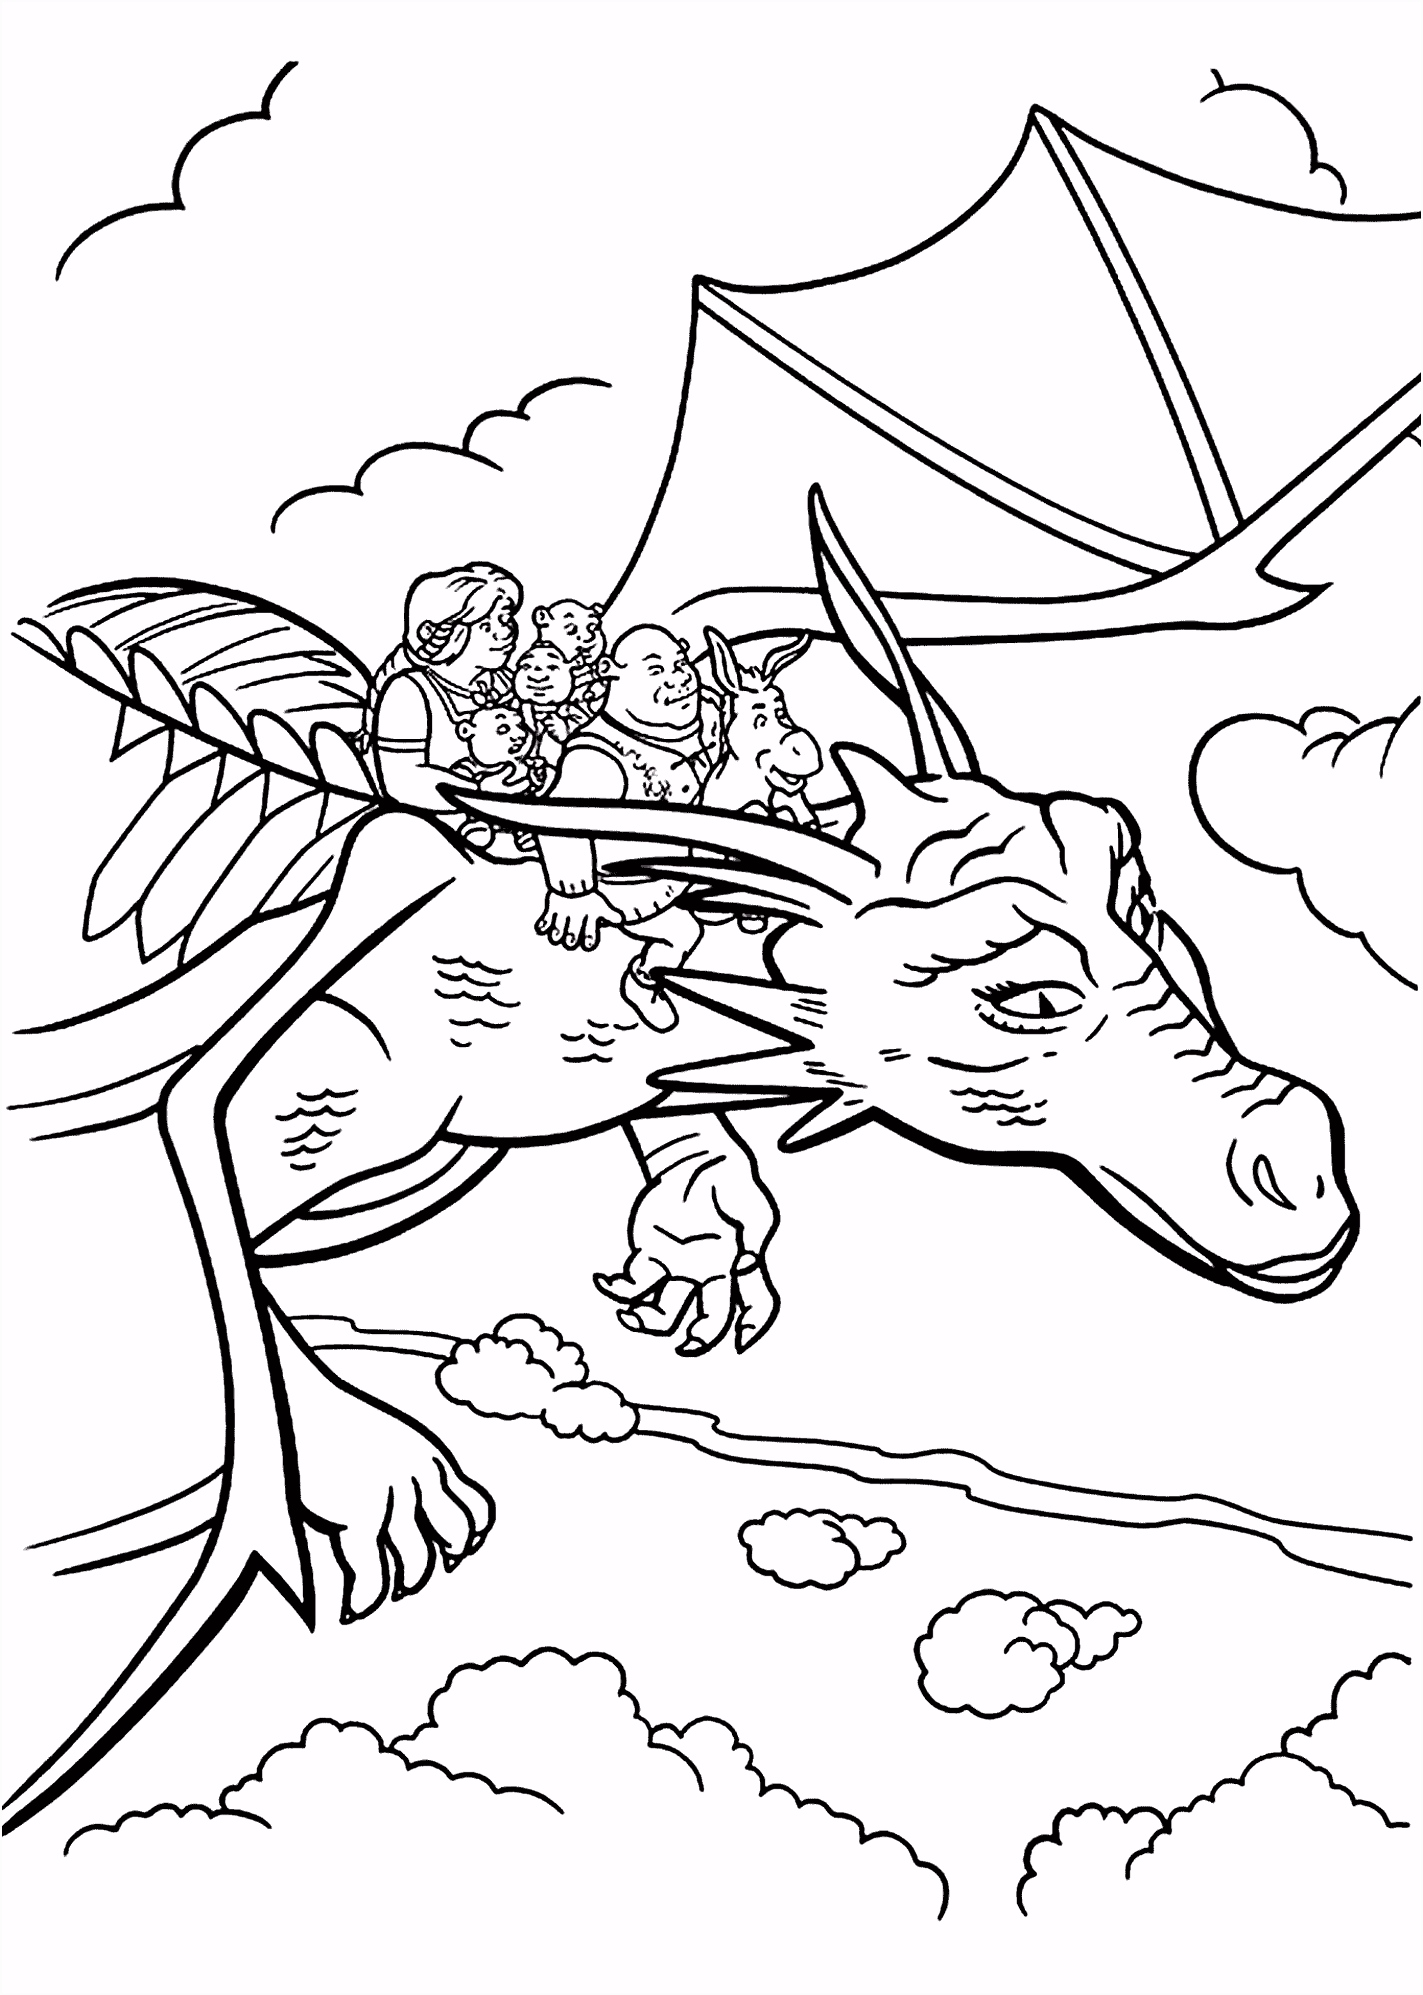 All from Shrek coloring pages for kids printable free